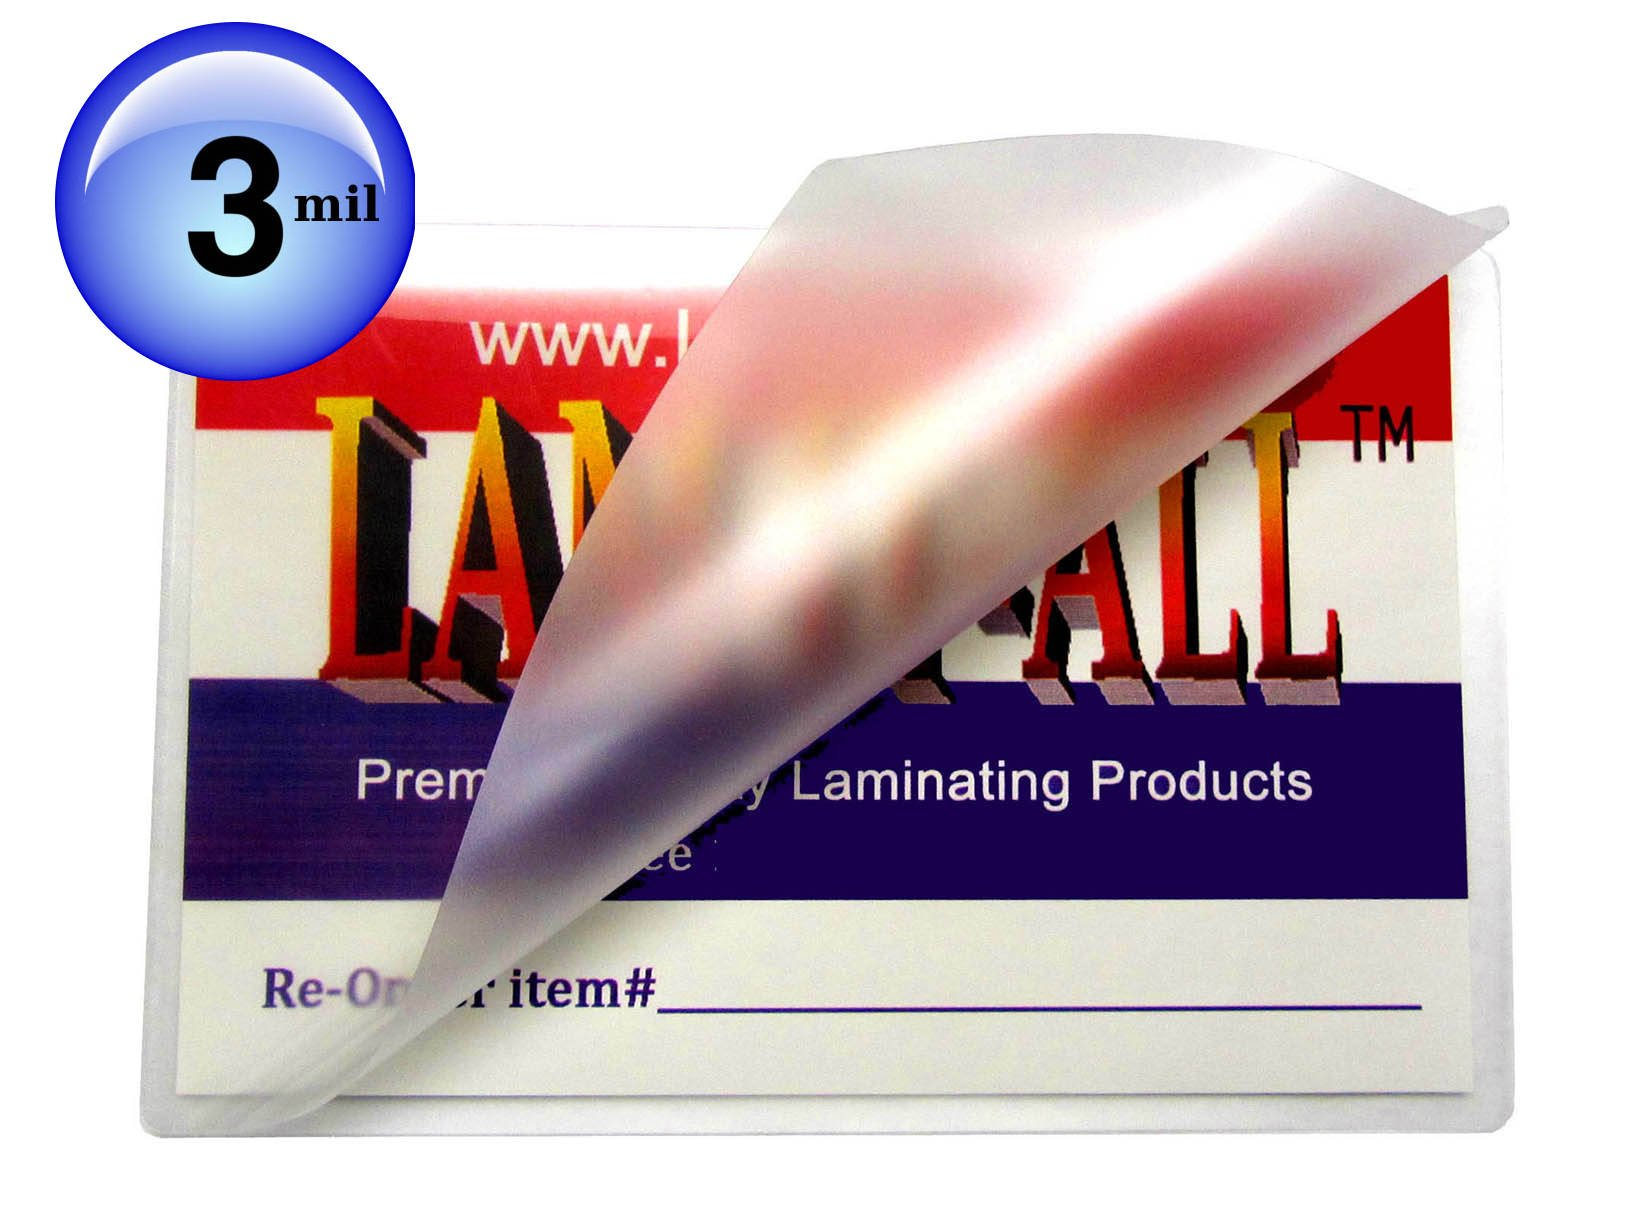 Business Card Laminating Pouches 3 Mil 2-1/4 x 3-3/4 Laminator Sleeves Qty 100 LAM-IT-ALL